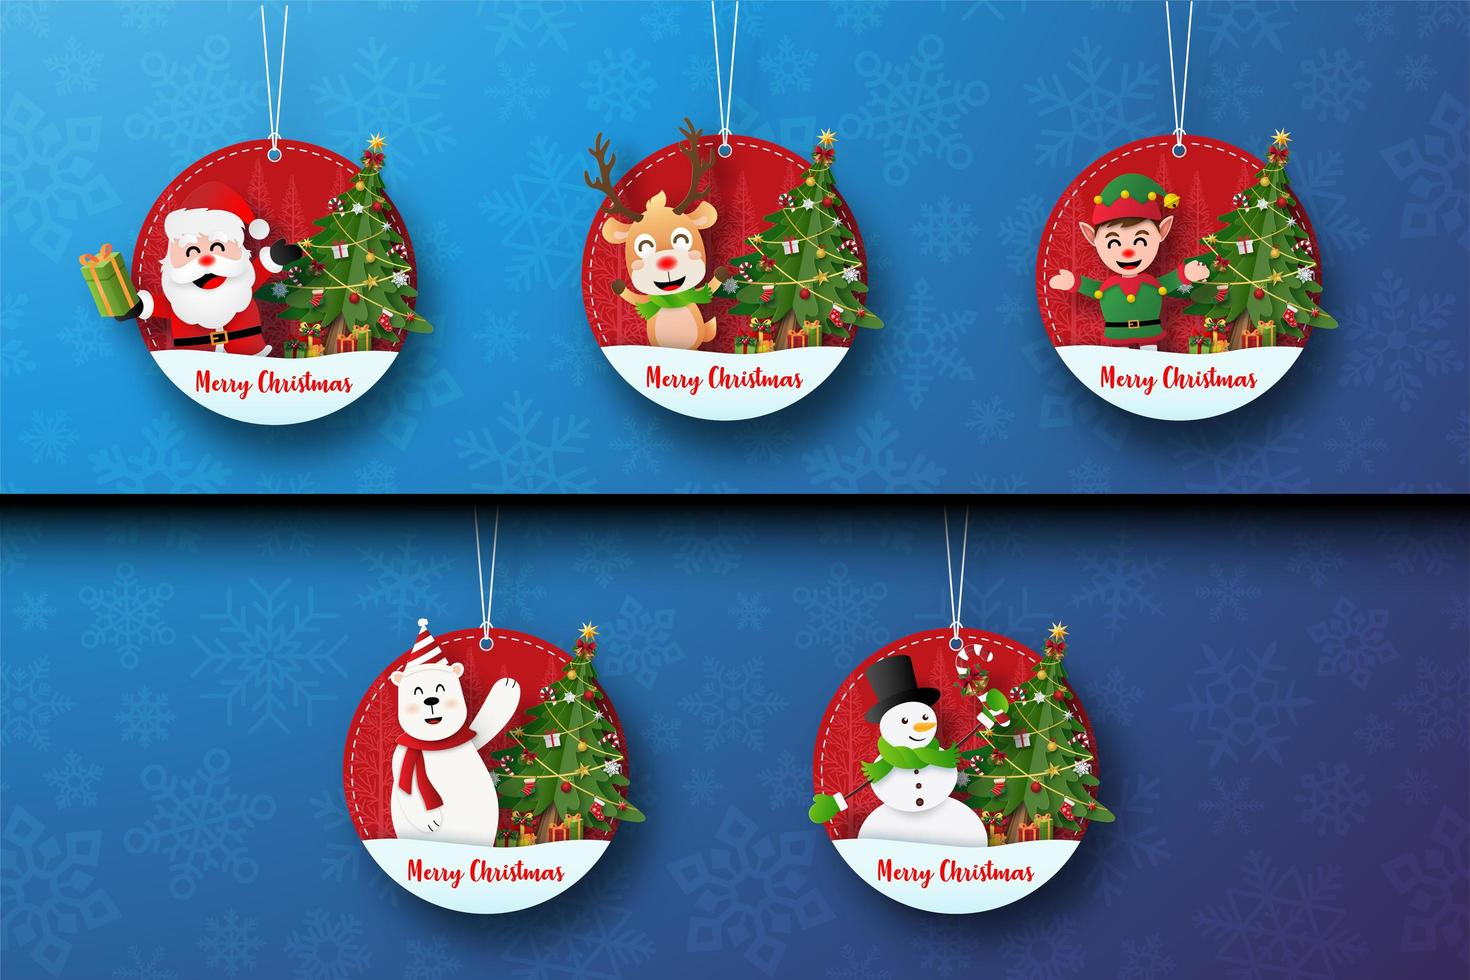 Set of Christmas tags with cute Christmas characters vector